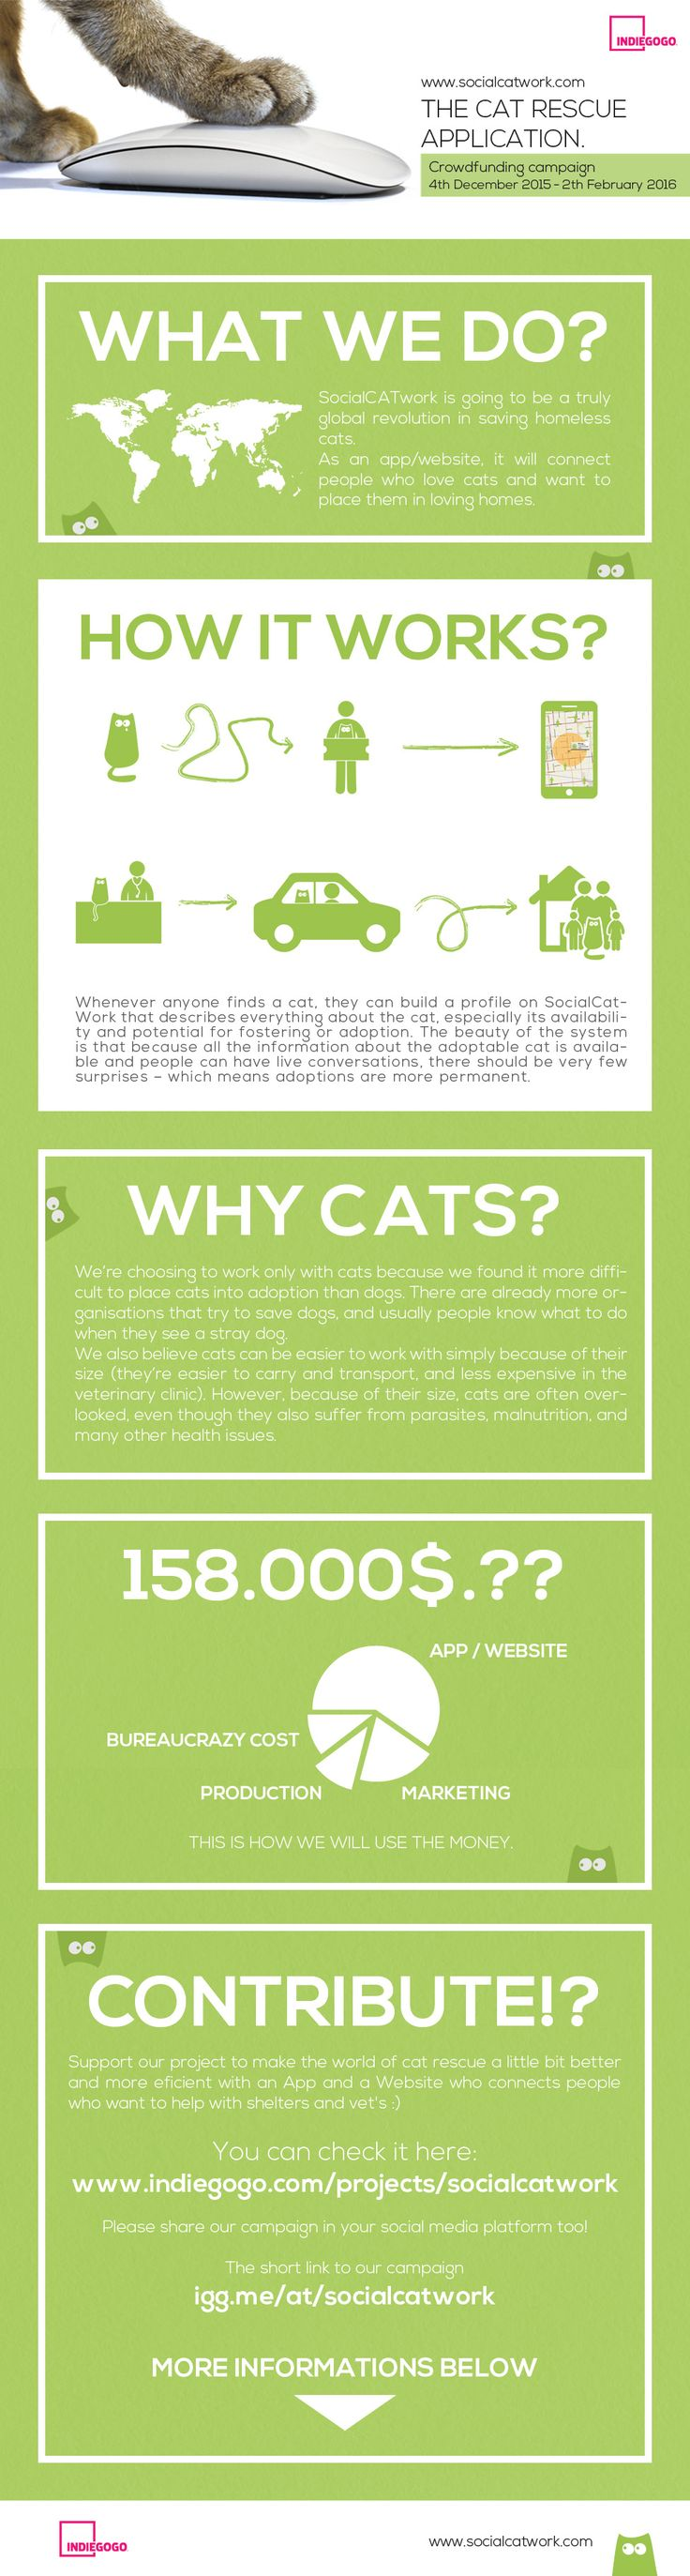 Ready to make an impact on cat rescue? Support our project to make the world of cat rescue a little bit better and more eficient with an App and a Website that connects people who want to help stray cats find a lovely home.  Please share our campaign in your social media platform too! #socialcatwork #crowdfunding